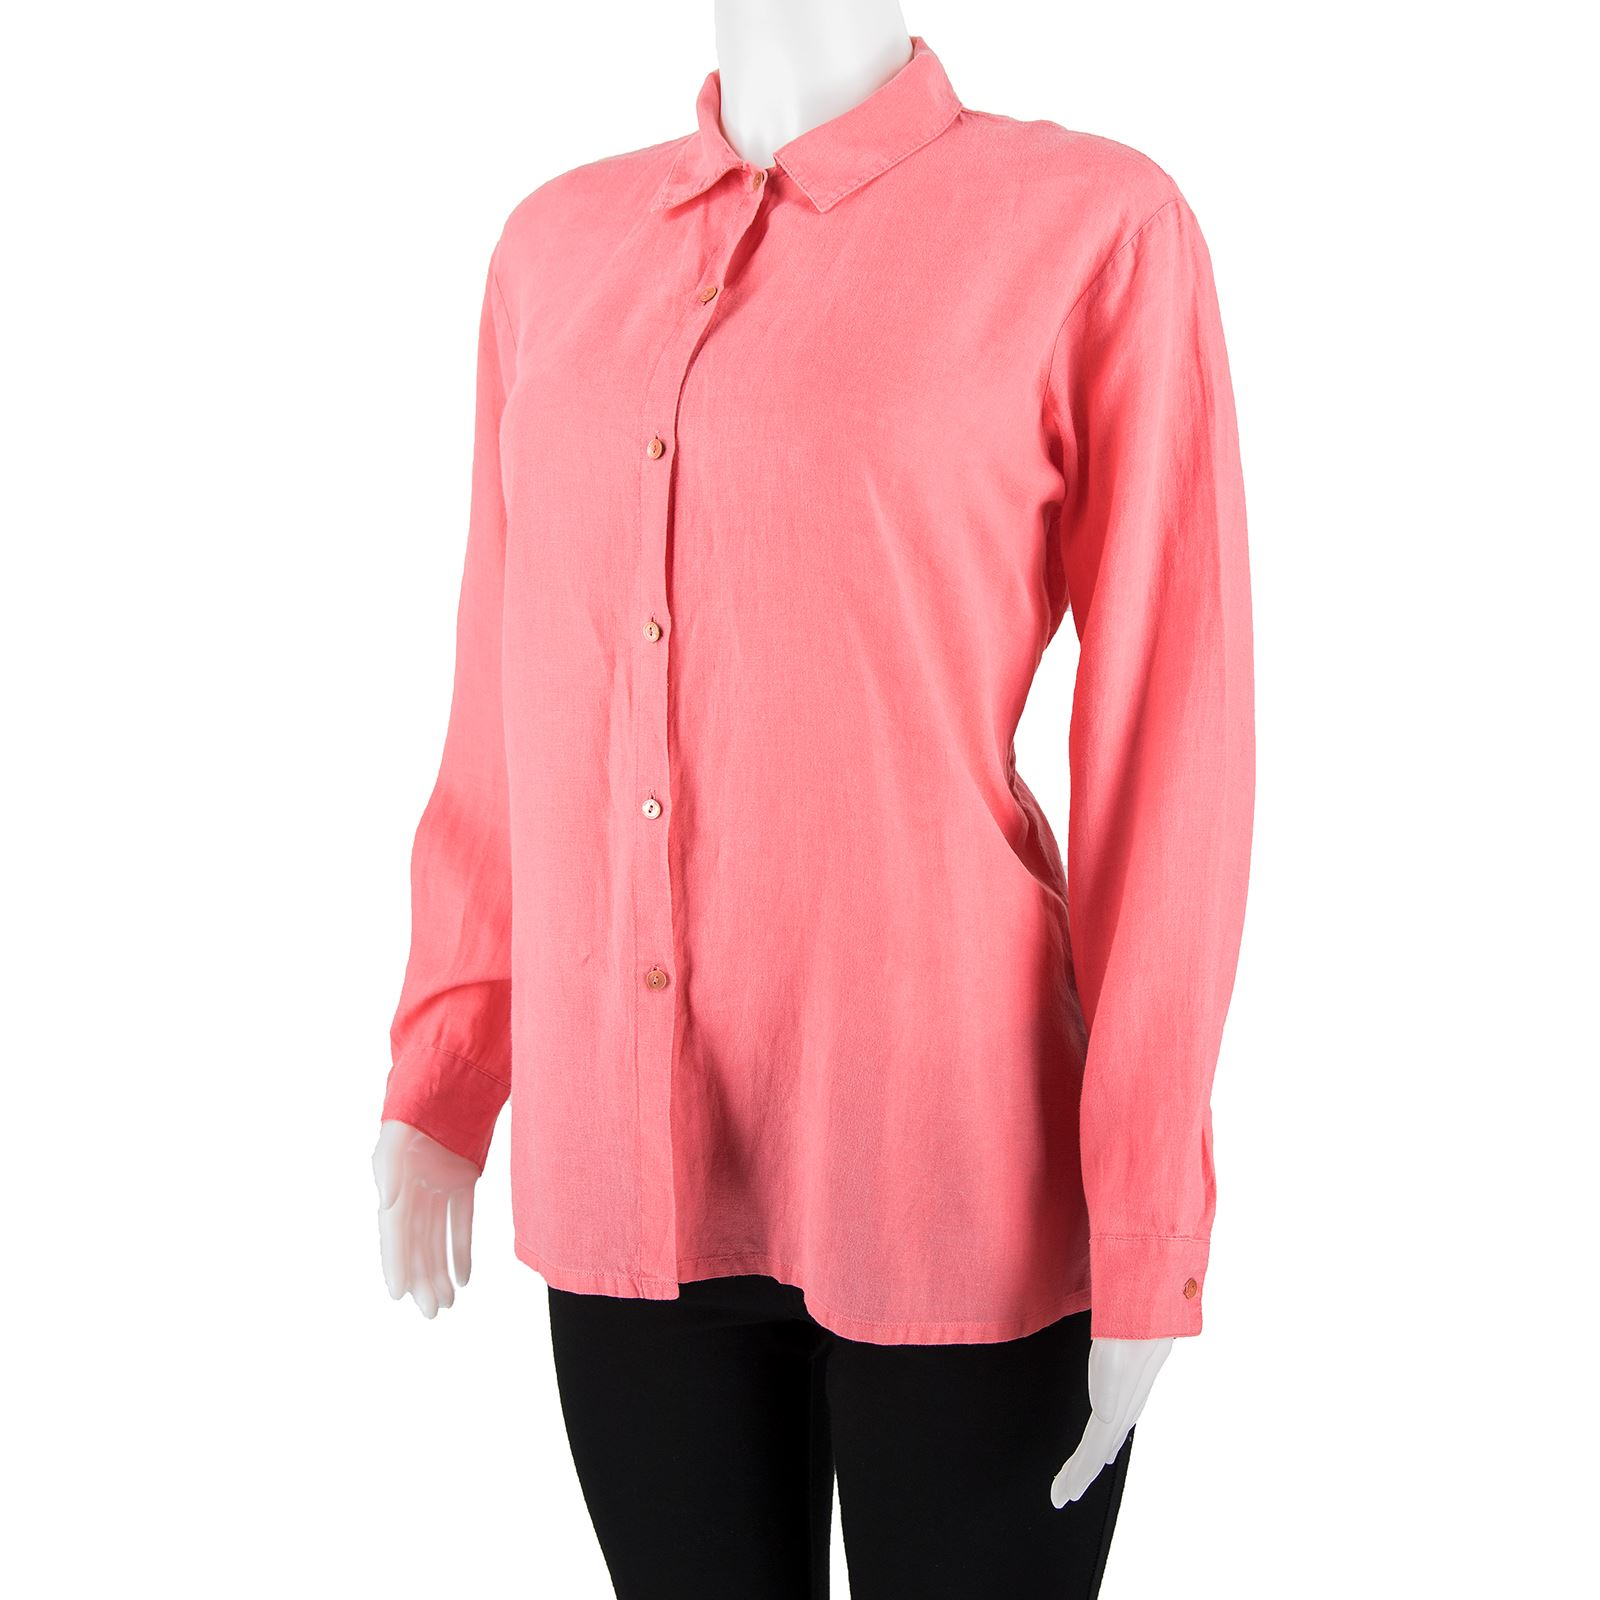 b7b7f6752 Eileen Fisher Coral Linen Side Slit Collar Long Sleeve Button Down Blouse  Size S